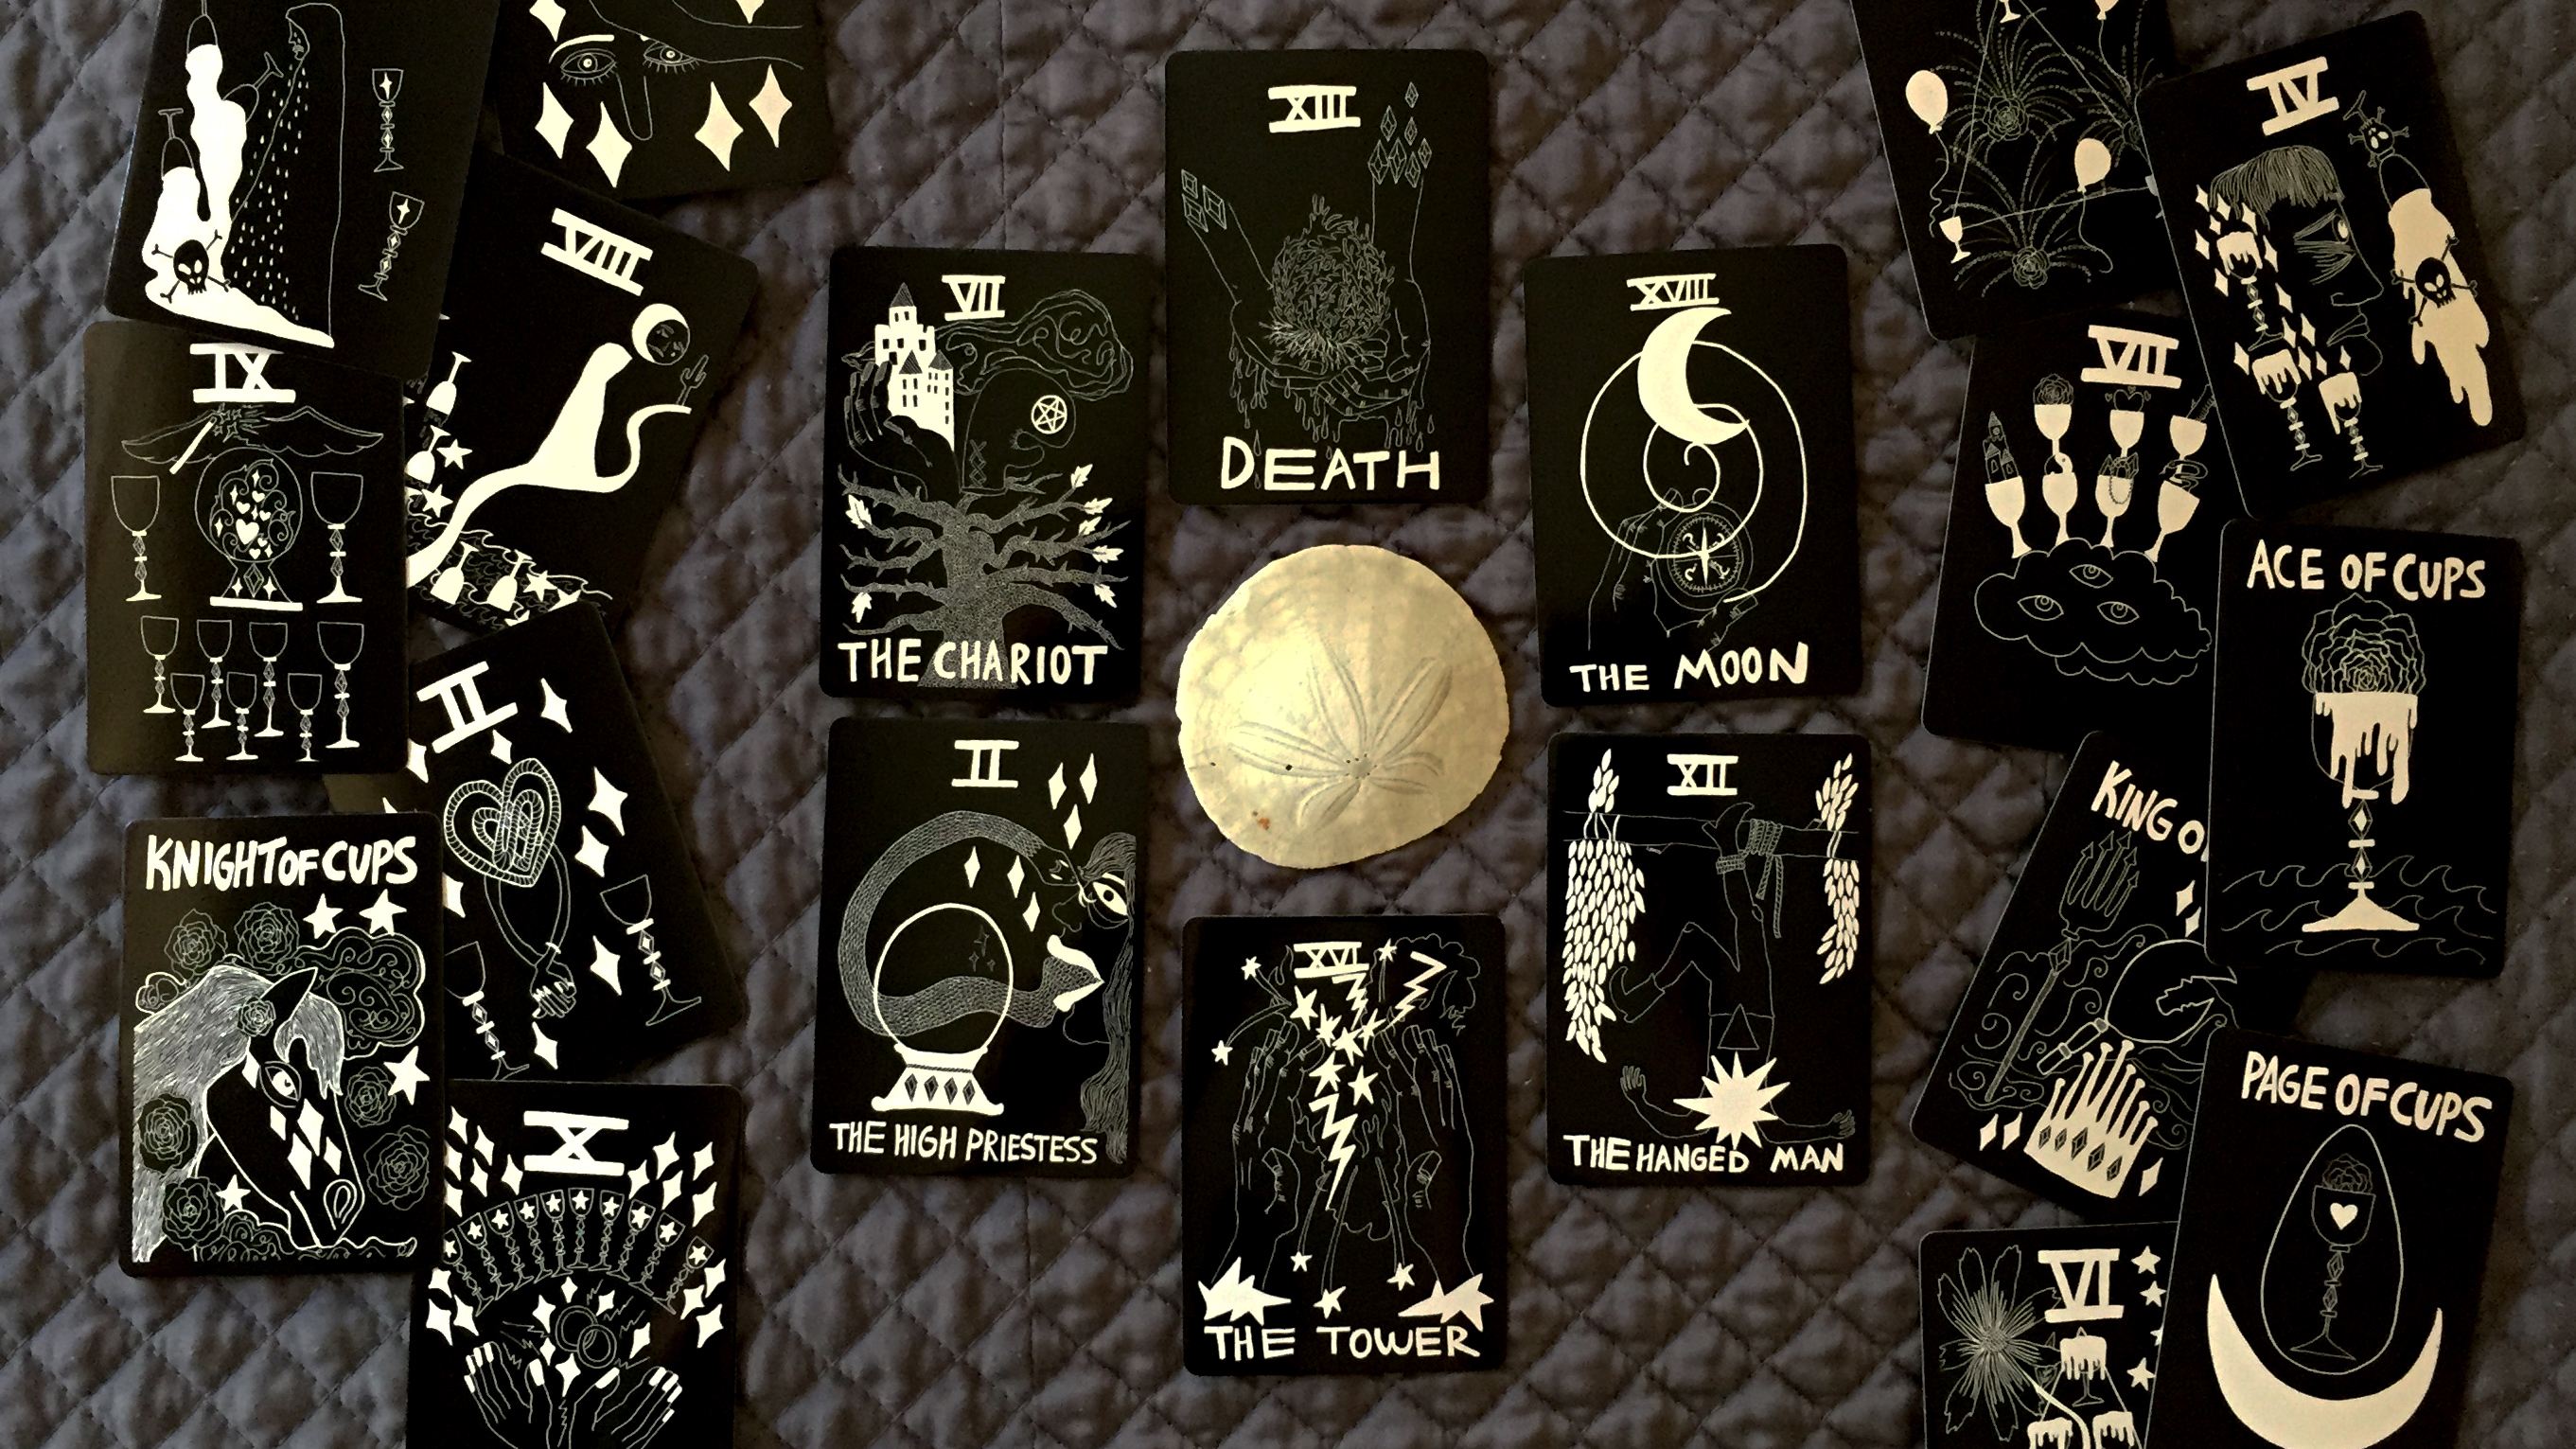 Water cards in tarot, with the Chariot, Death, Moon, Hanged Man, Tower, High Priestess, and all cards in the Cups suit arranged around a sand dollar.